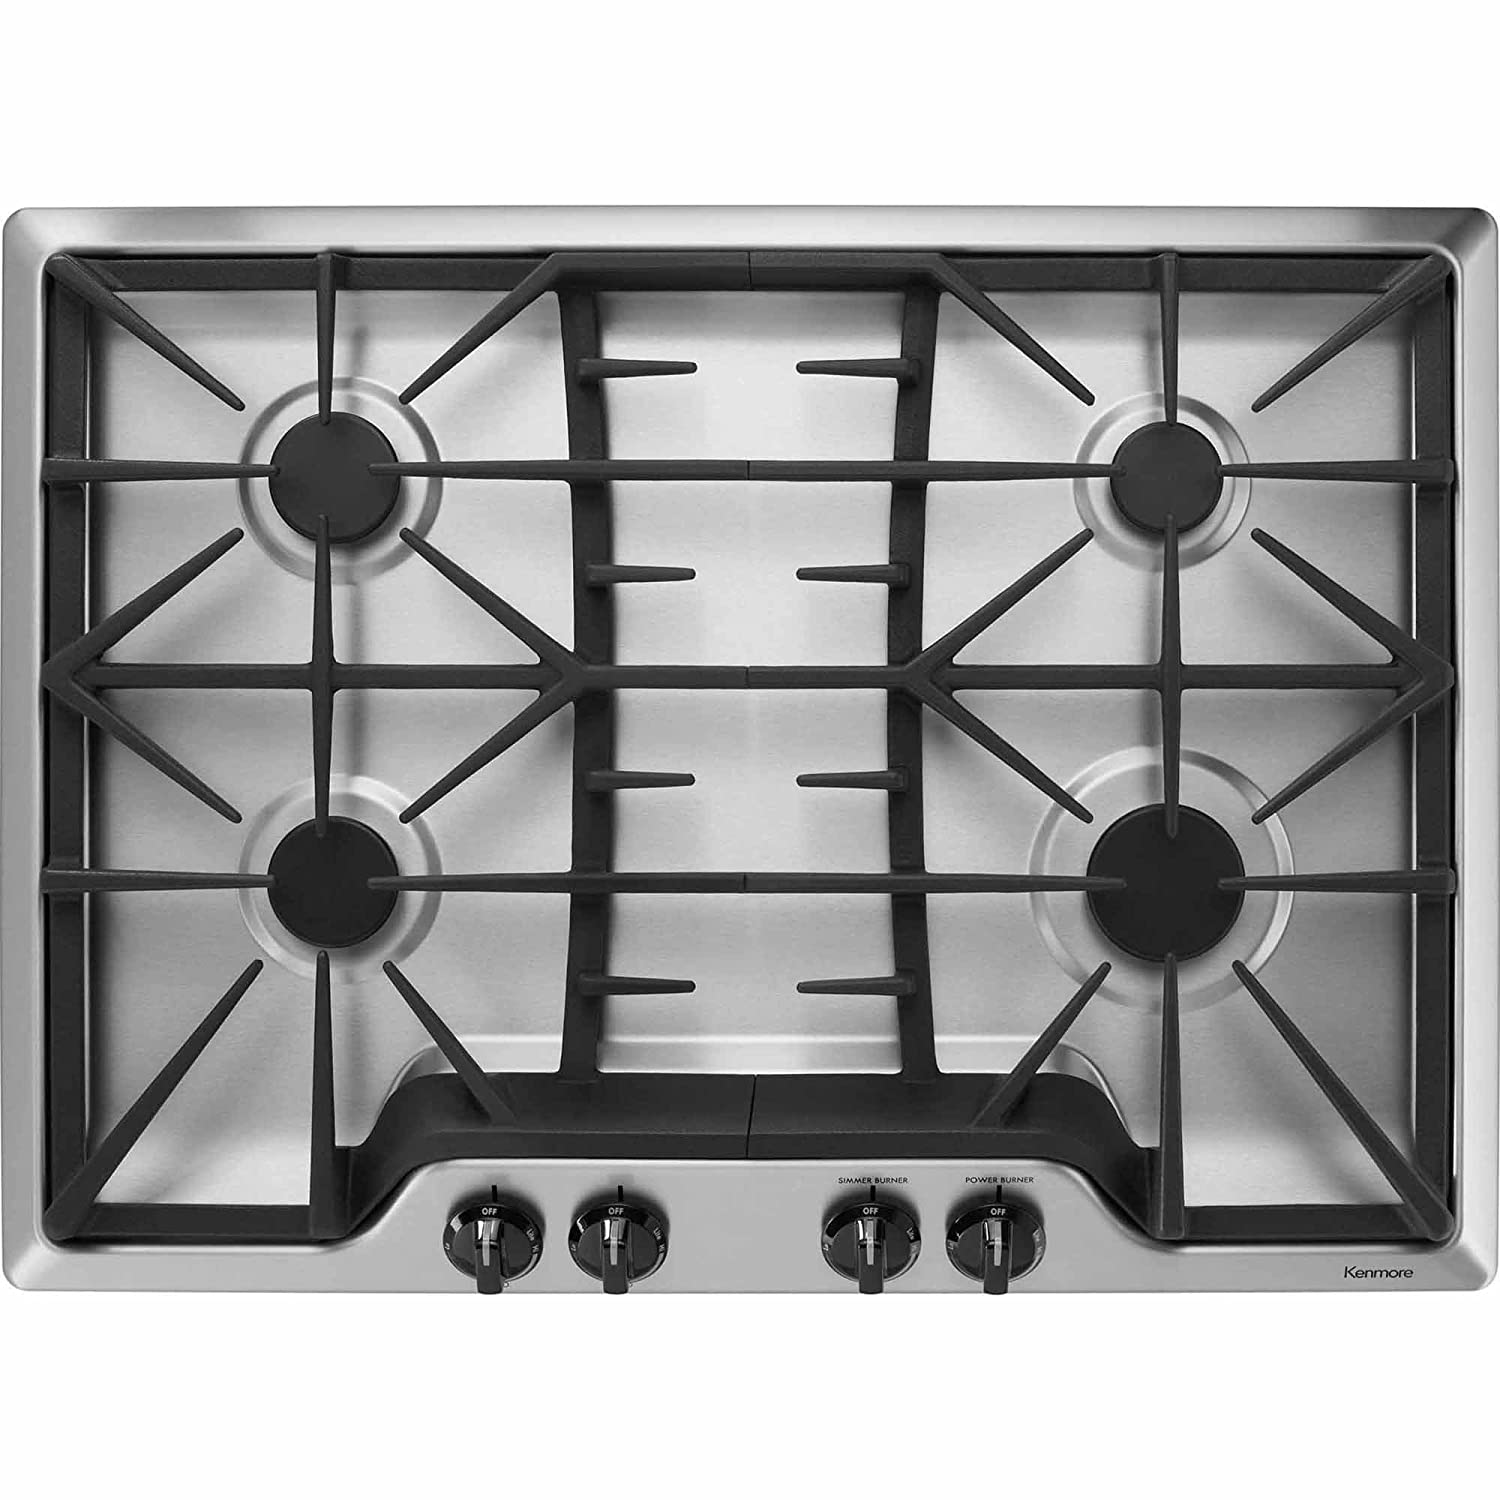 Kenmore 32533 30' Gas Cooktop in Stainless Steel, includes delivery and hookup Sears Brands Management Corporation (Kenmore) 02232533